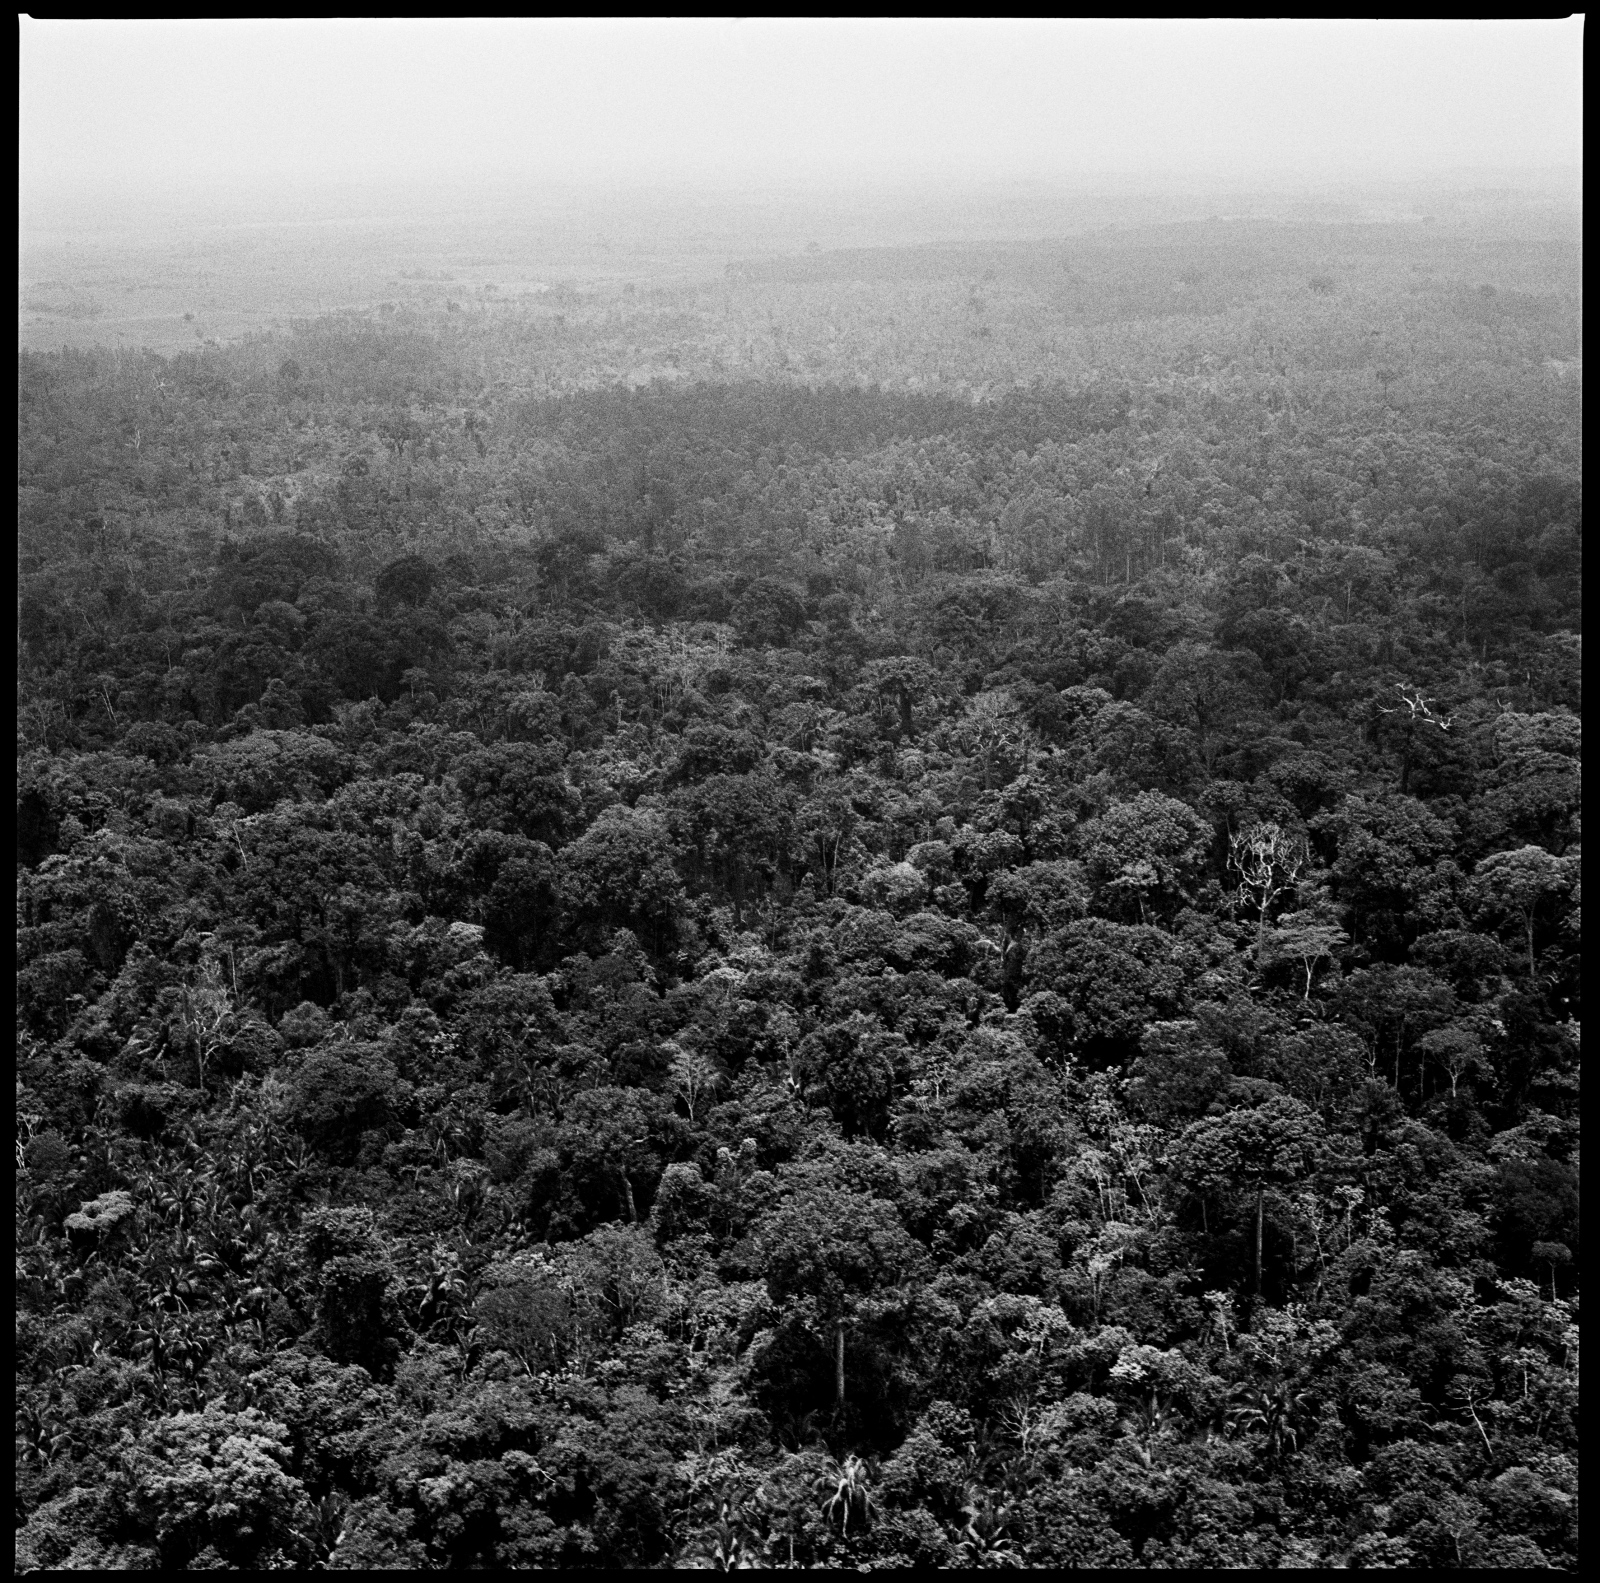 An aerial view from the amazon jungle in the Araguaia region between the states of Para and Tocantins in Brazil. This region in the late 1960's and early 70's was taken by a communist guerrilla movement which was later exterminated by the Brazilian army during the military dictatorship.    Para, Brazil, October 2012.